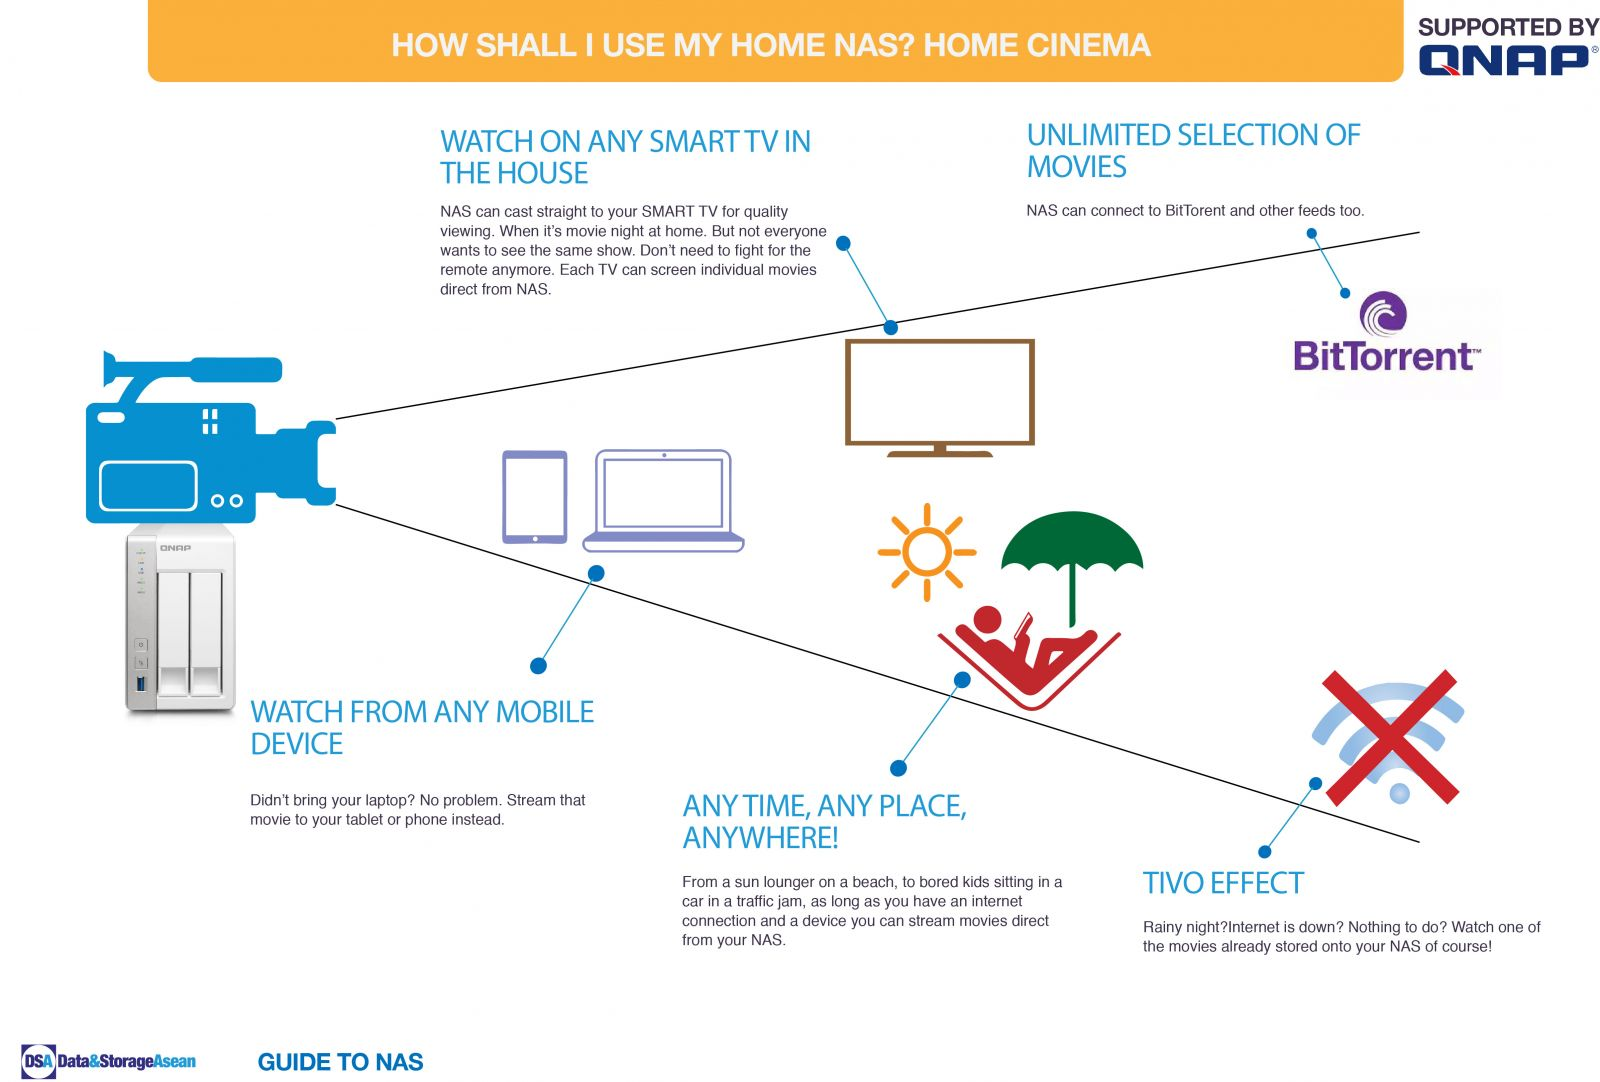 DSA How shall i use my home NAS Home Cinema infographic supported by QNAP.pdf